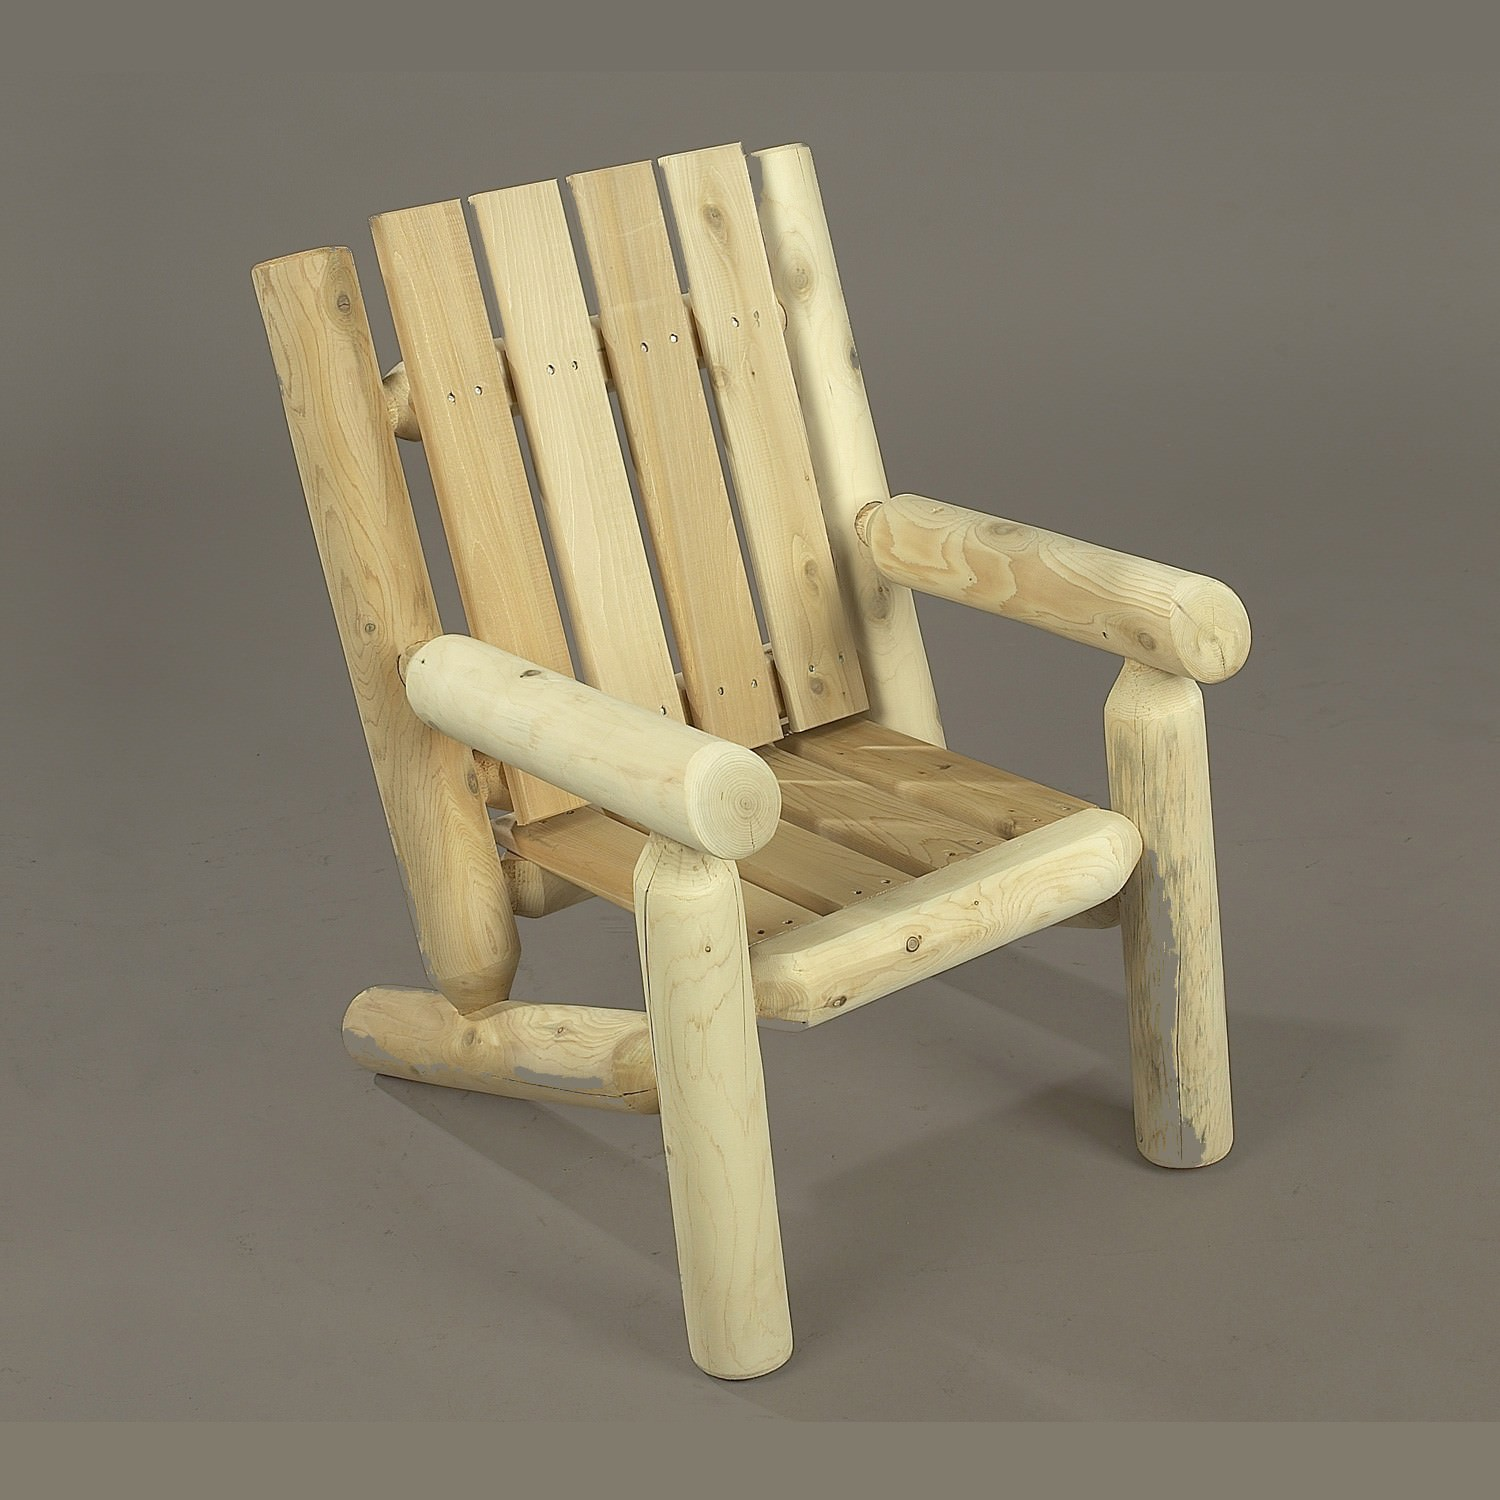 Captivating Kids Log Chair Furniture Set In Cedar Dfohome. Adirondack ...